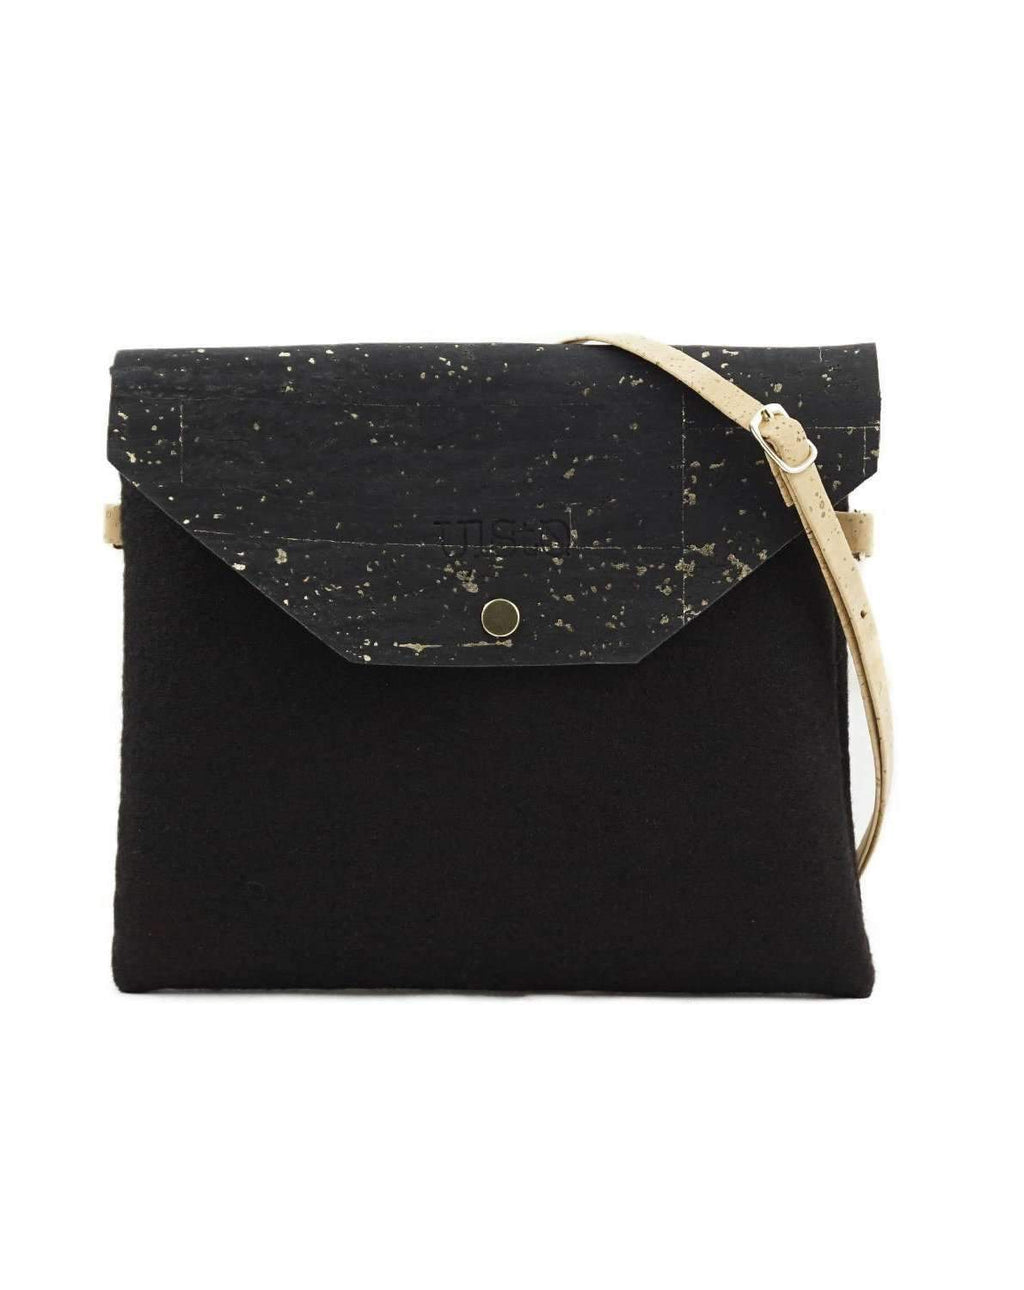 Marila Black Gold - noia.shop